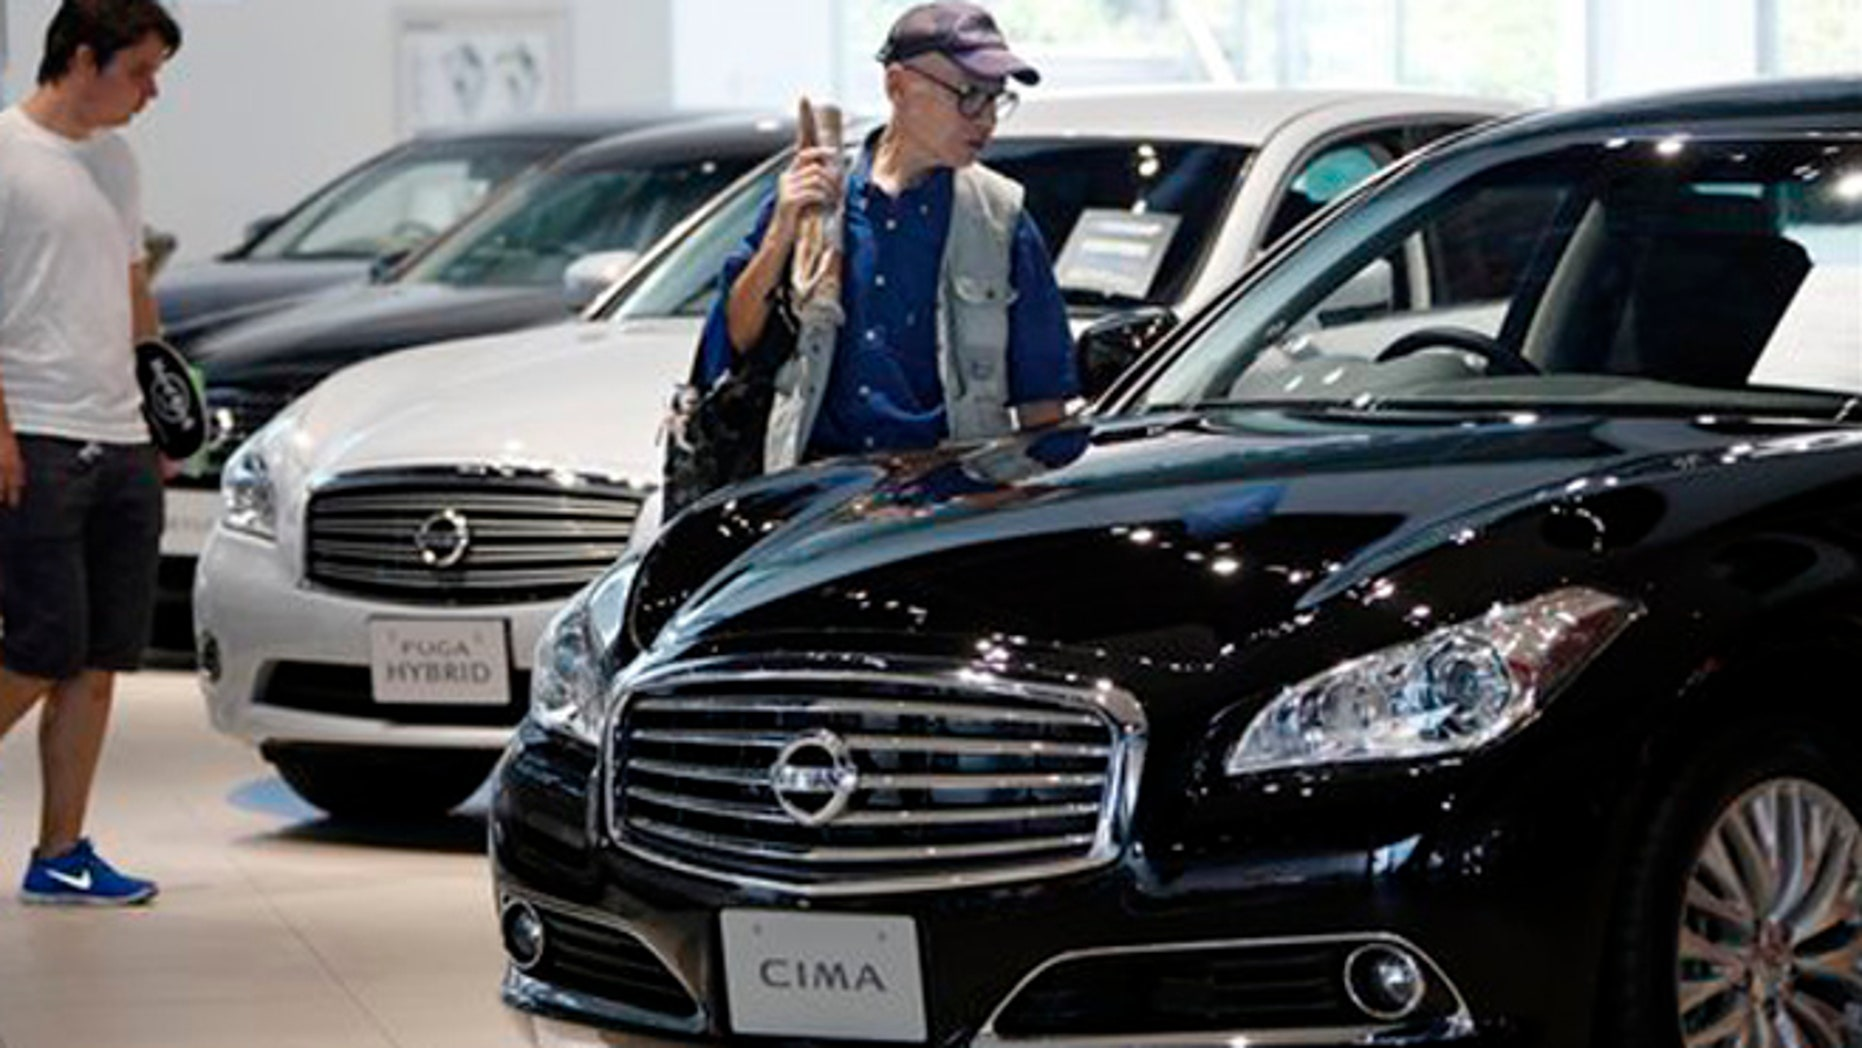 FILE: July 26, 2012: Visitors inspect cars at the Nissan Motor Co. global headquarters in Yokohama, Japan.